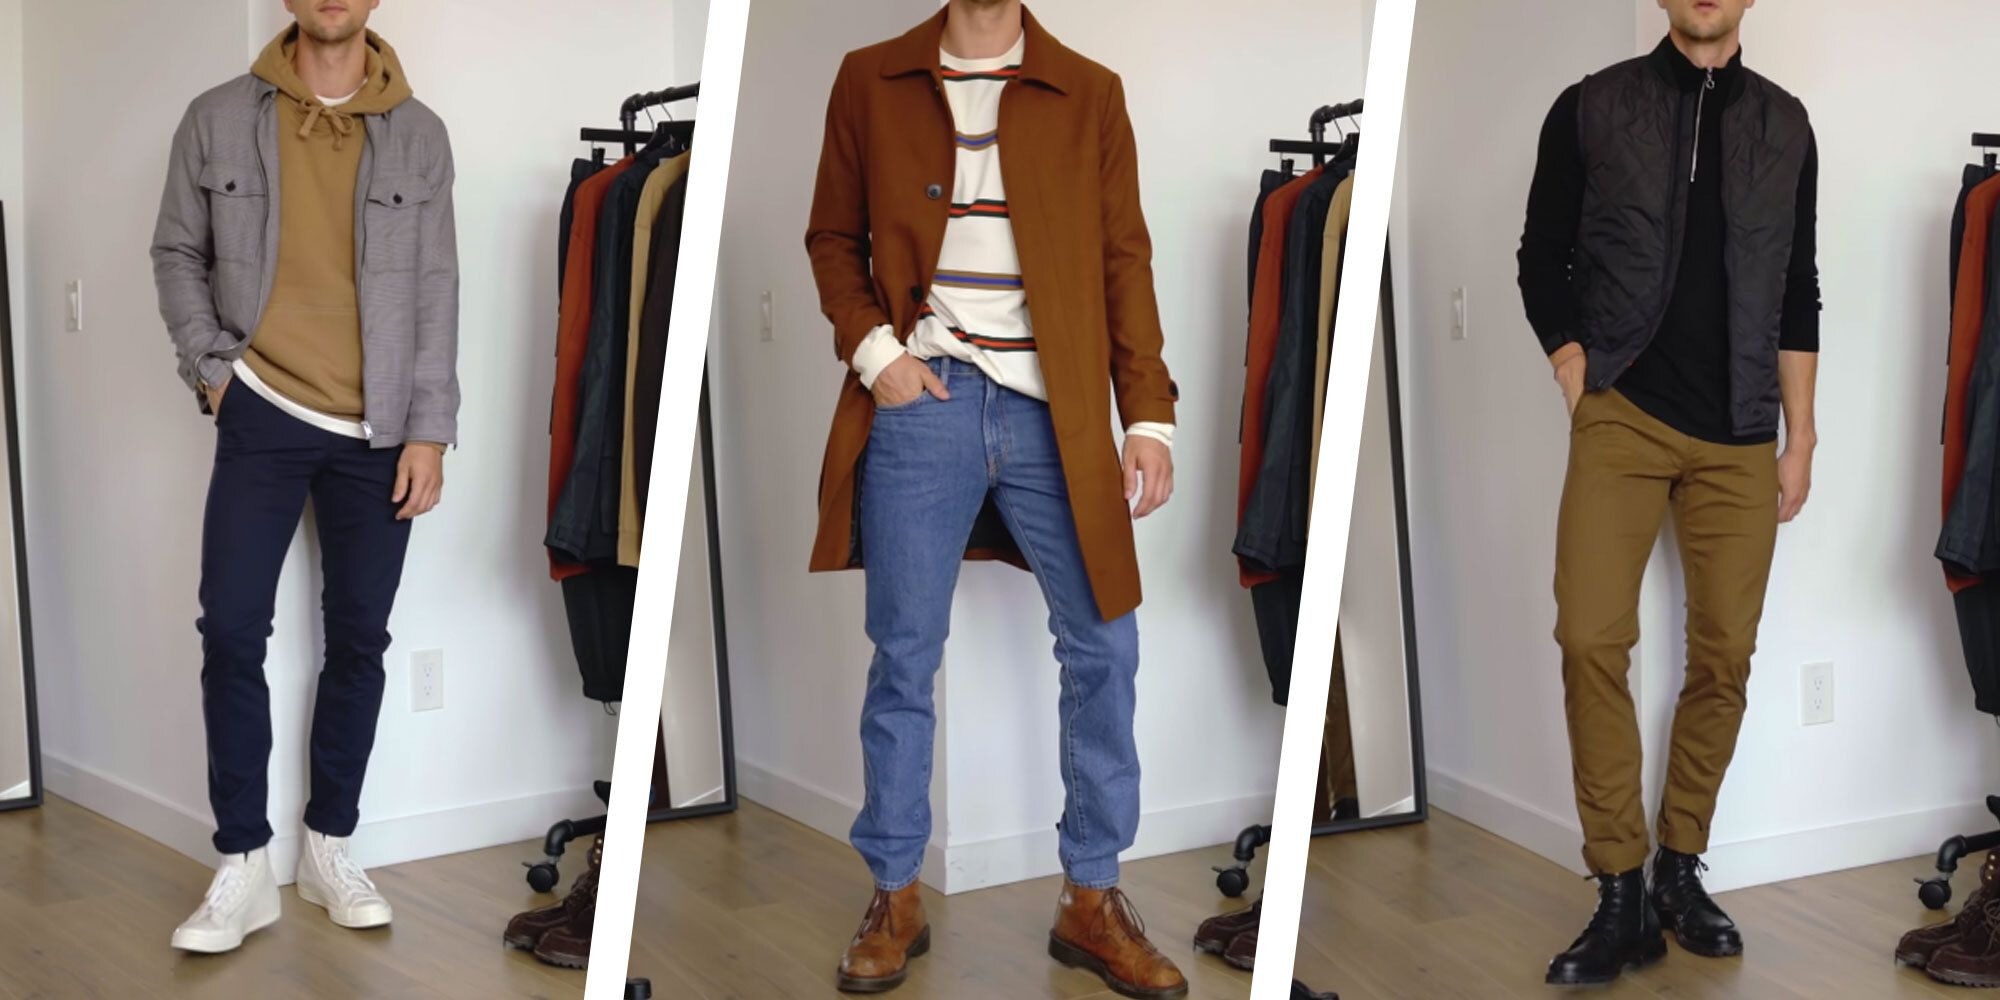 Watch This Guy Model 7 Simple Affordable Fall Outfits From H M